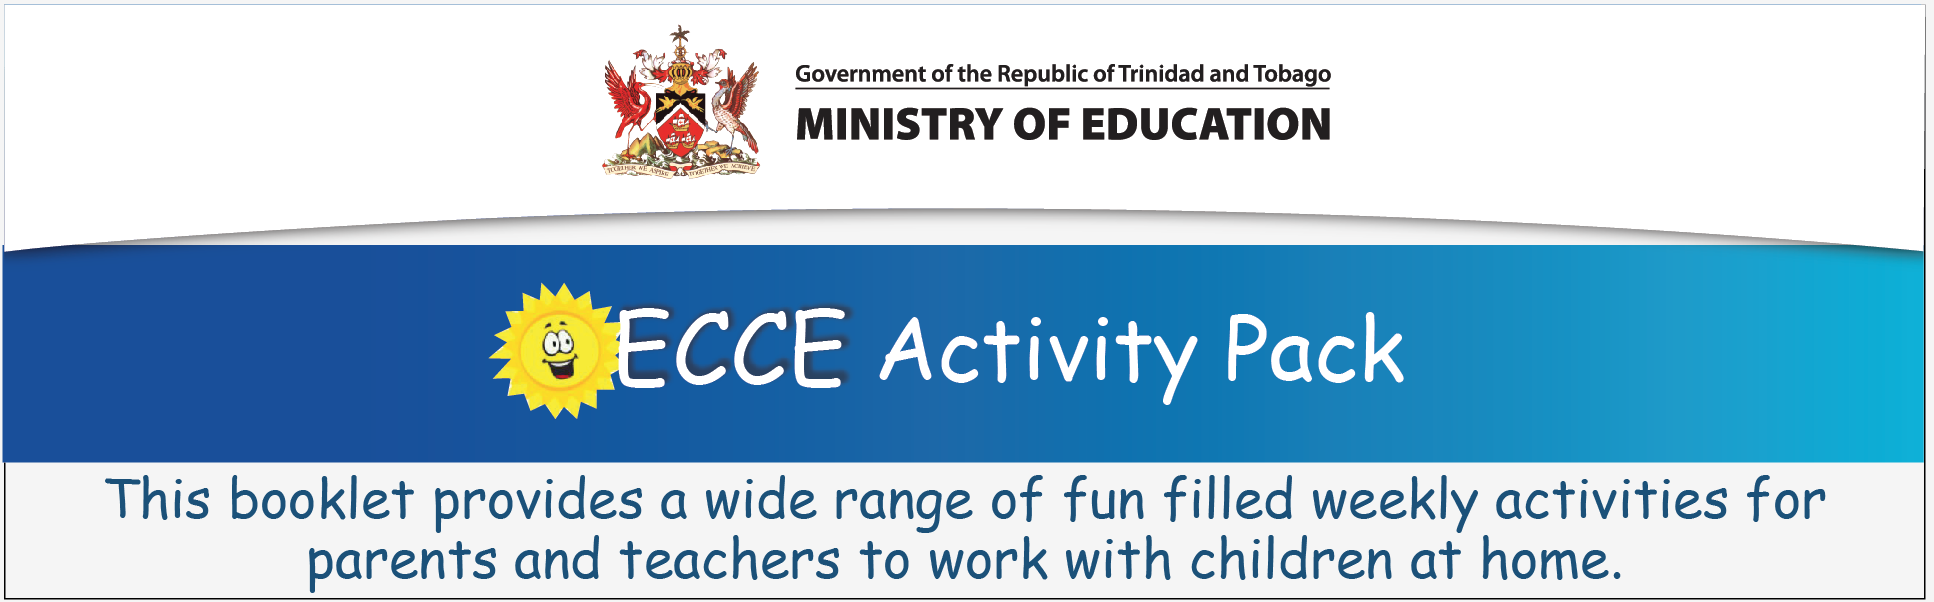 ECCE Activity Pack